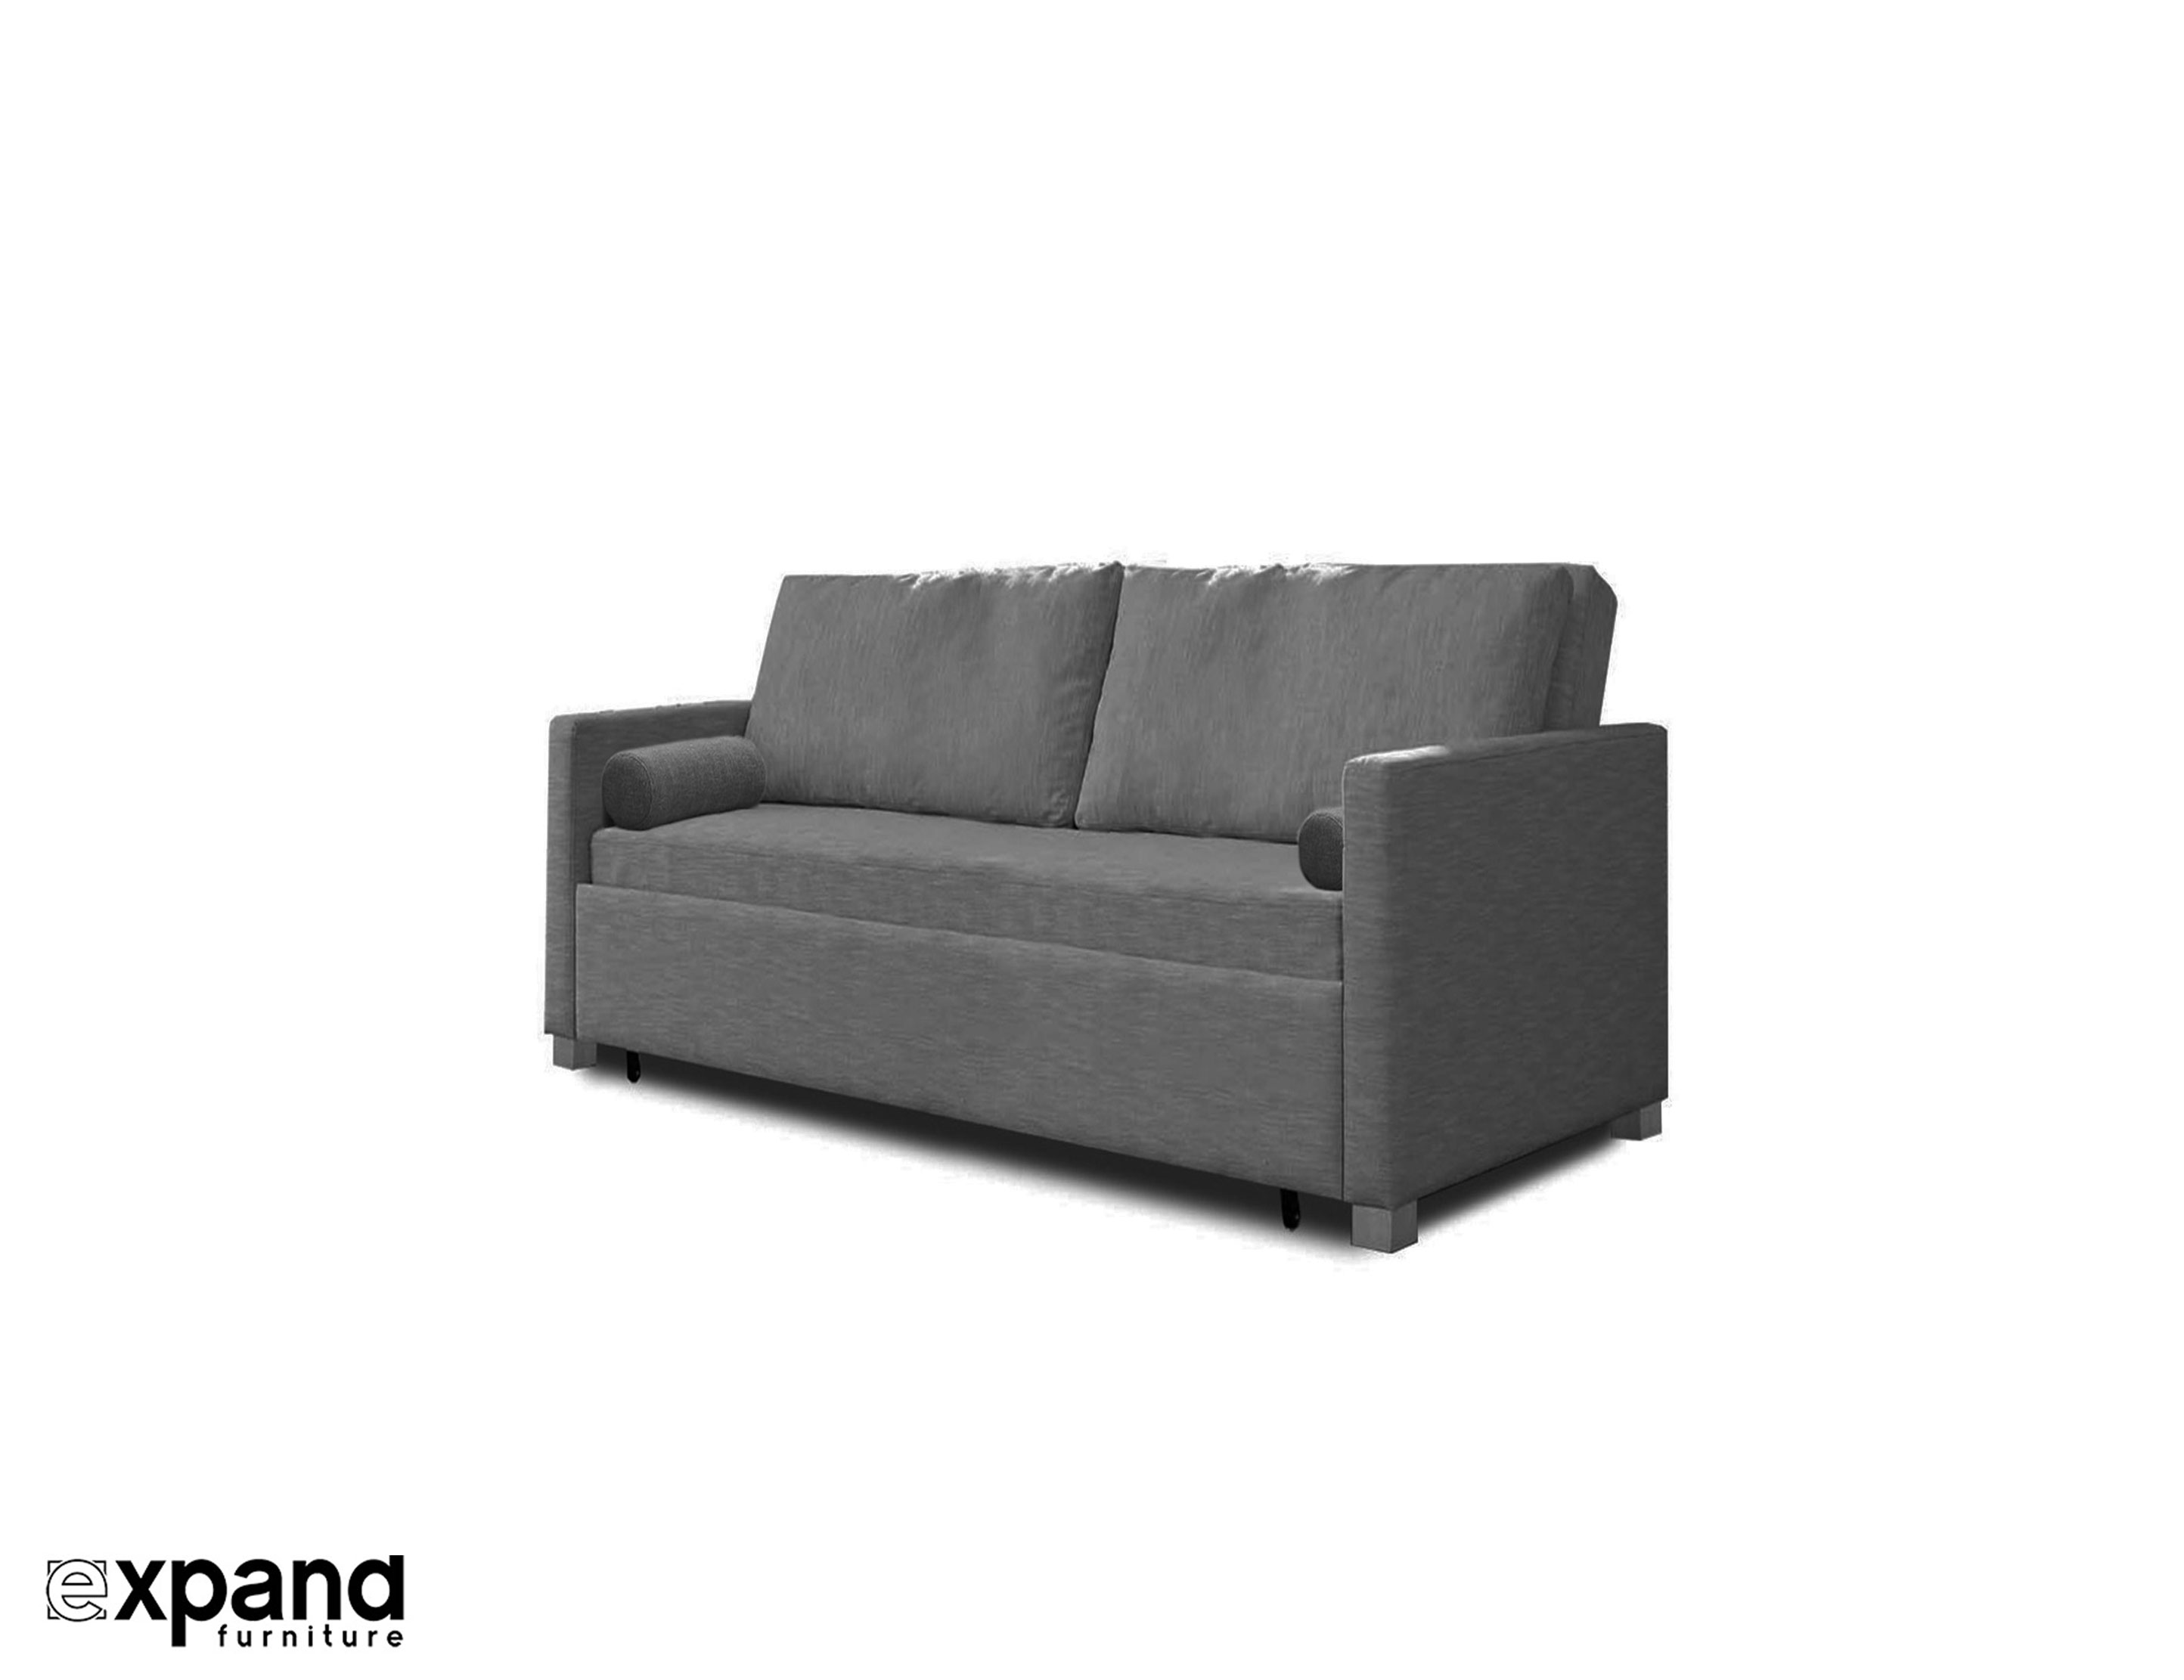 sofa queen bed sofaideas pin co size